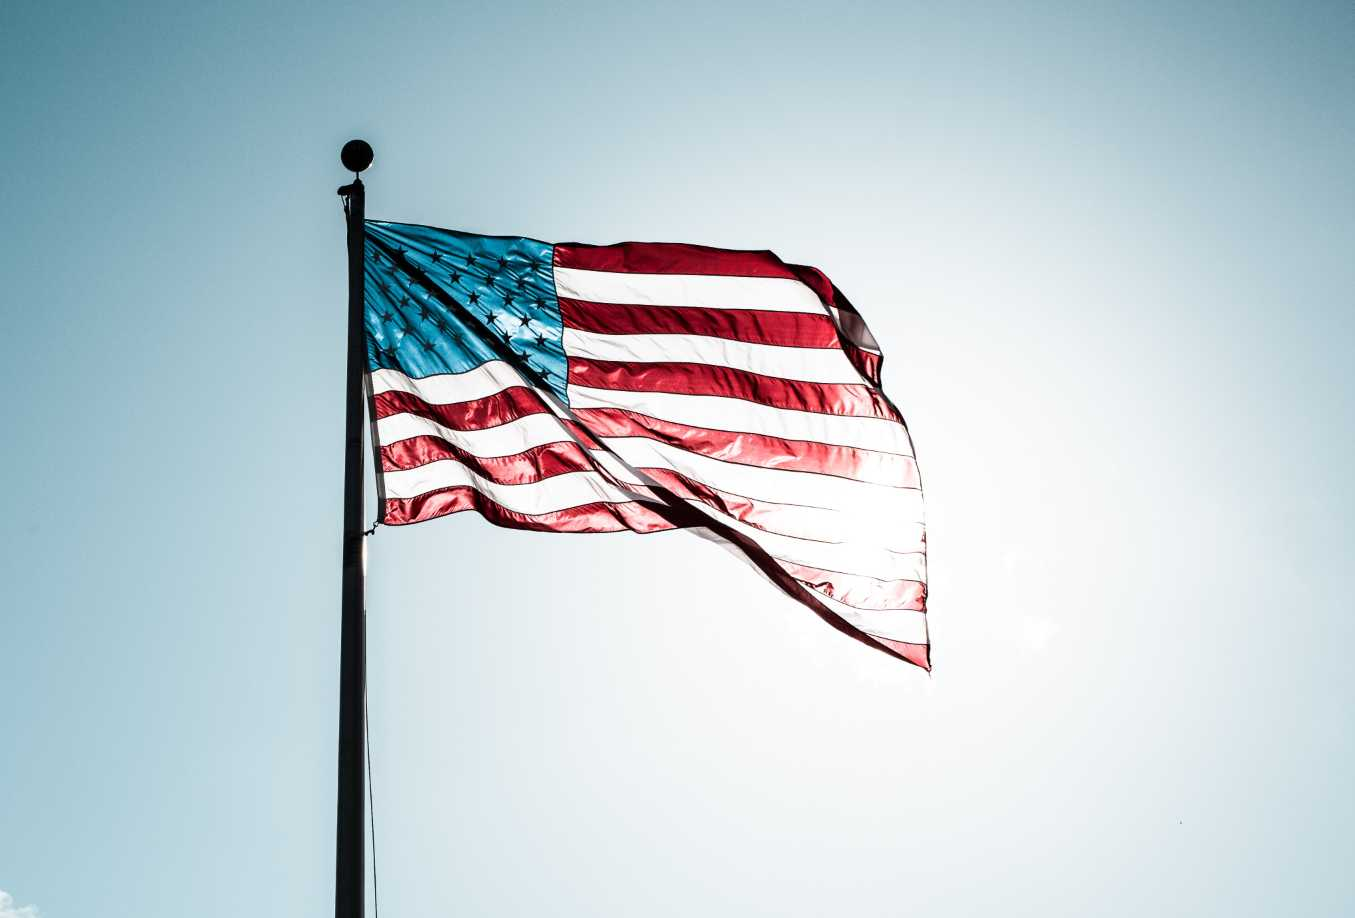 us flag waving on flag pole